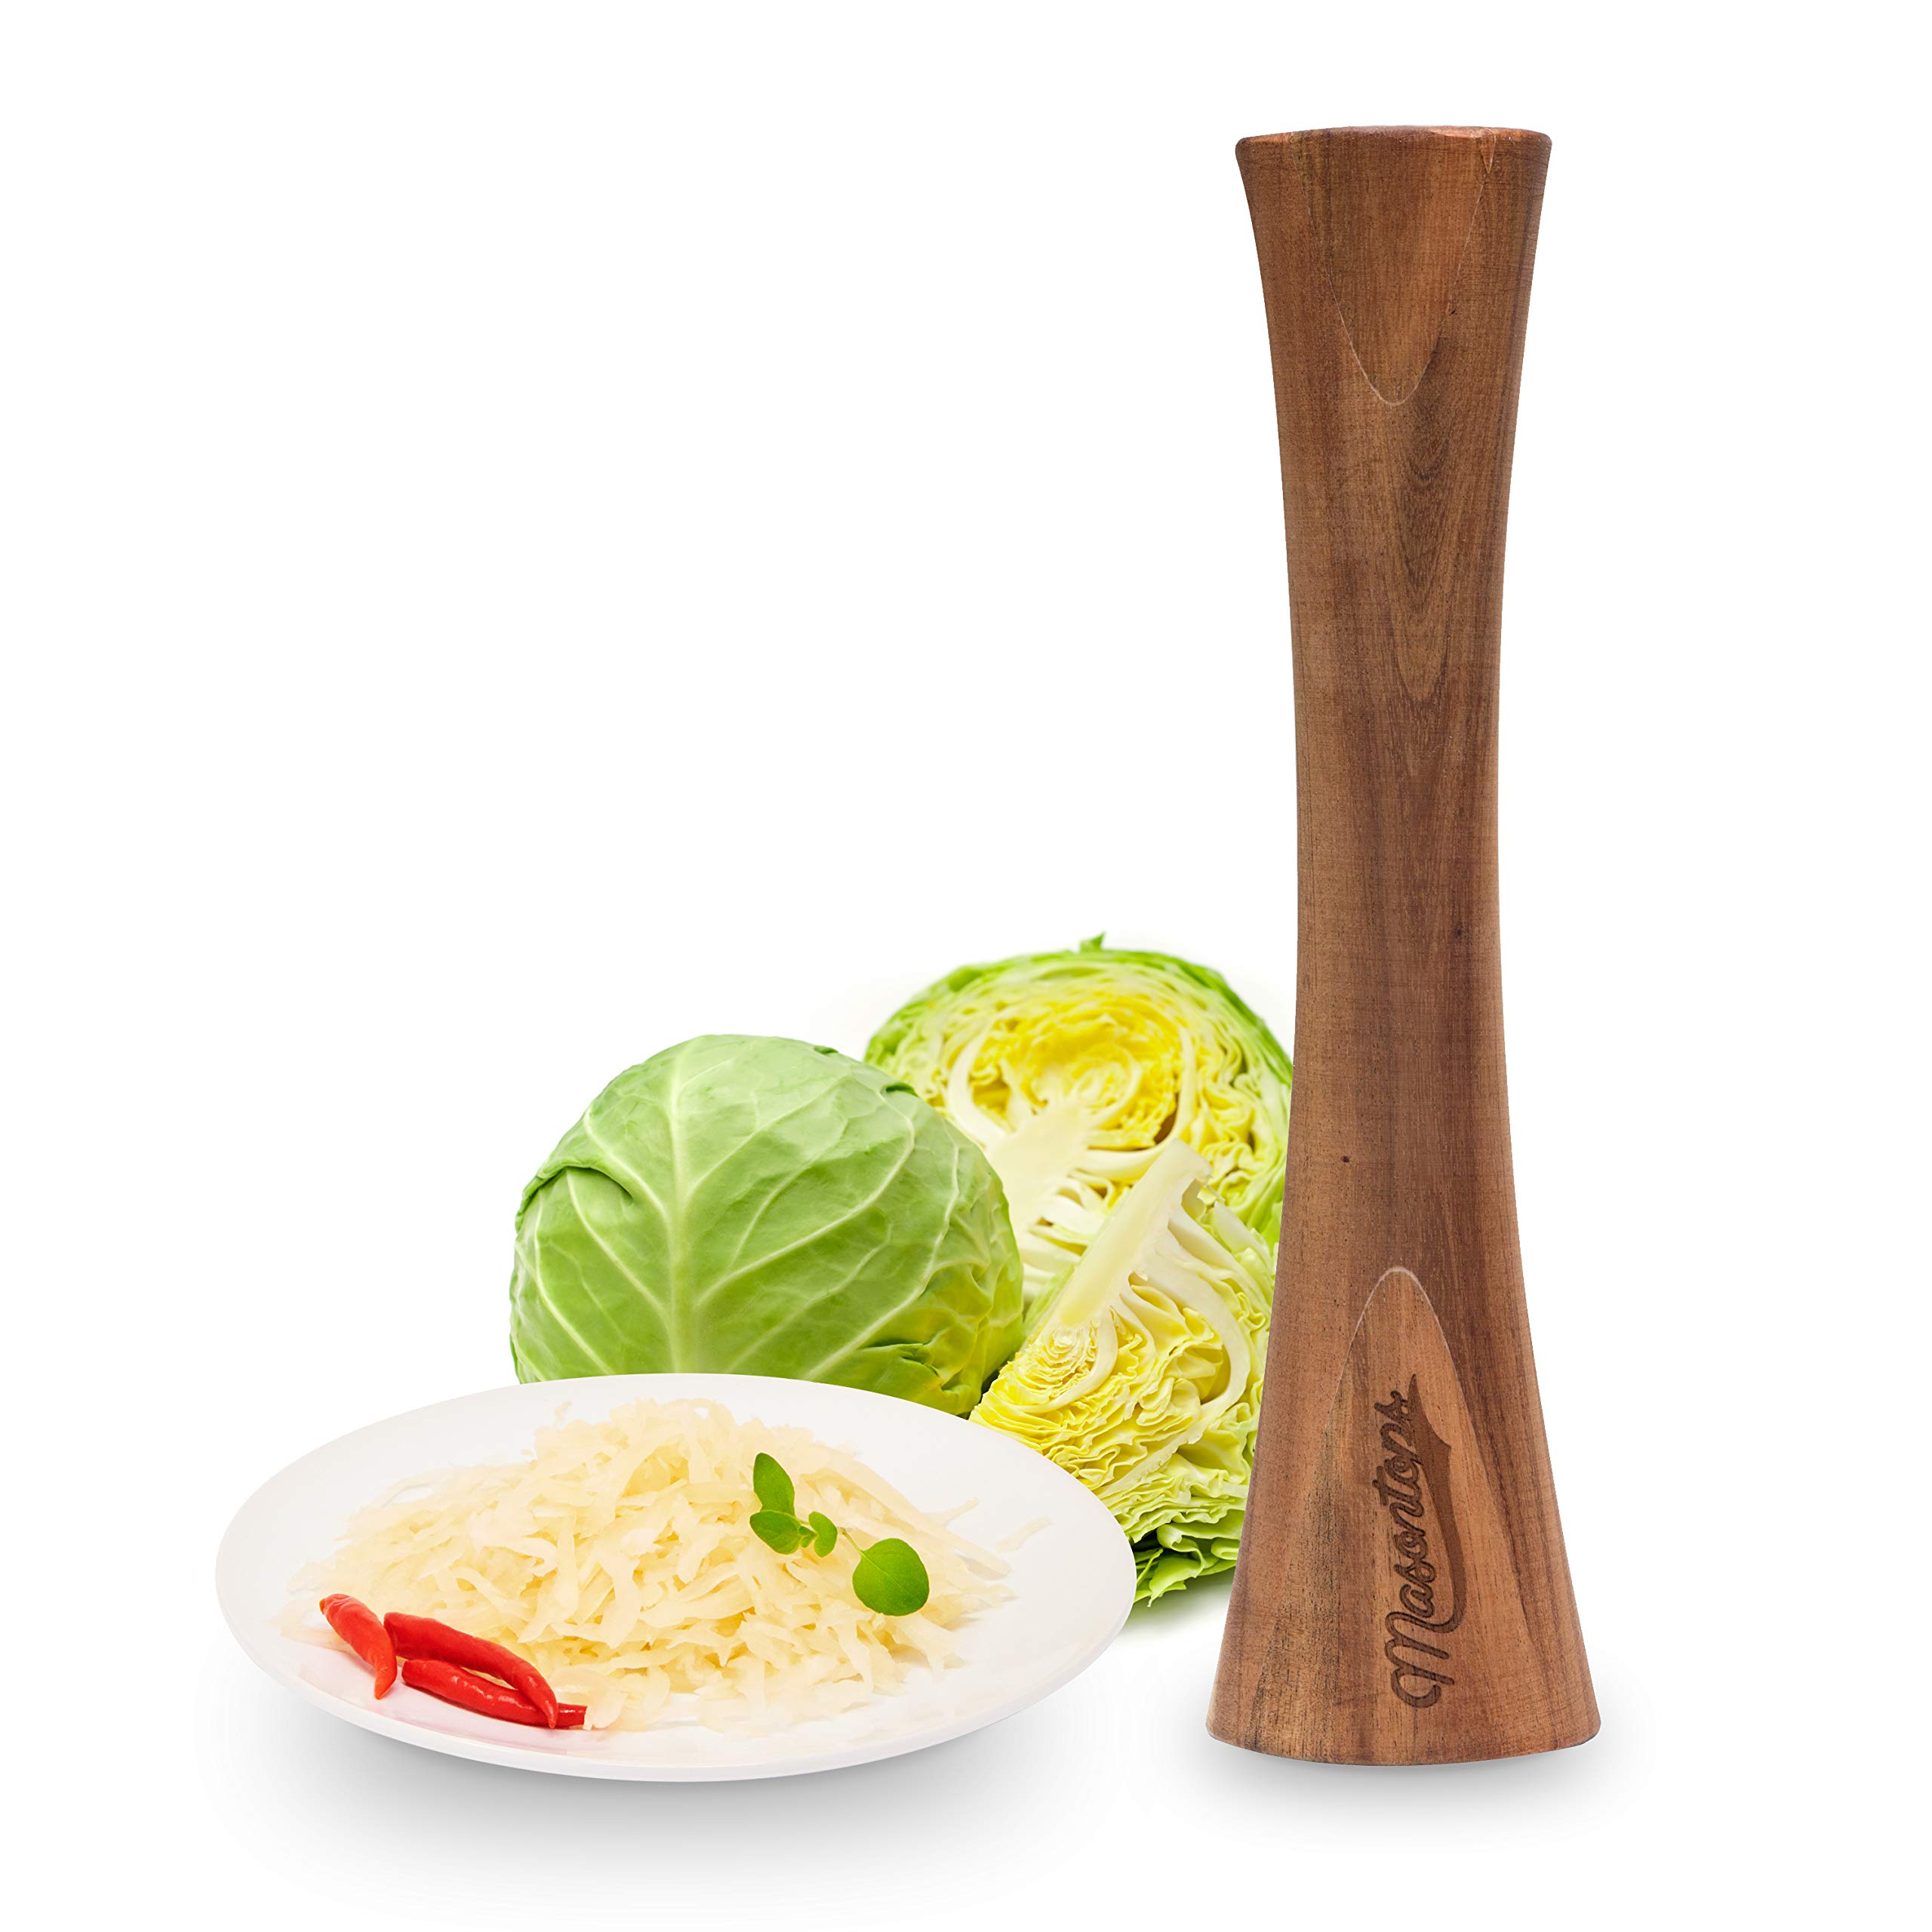 Masontops Pickle Packer - Acacia Wood Vegetable Fermentation Tamper - Cabbage Sauerkraut Pounder - Fermenting Food Tool